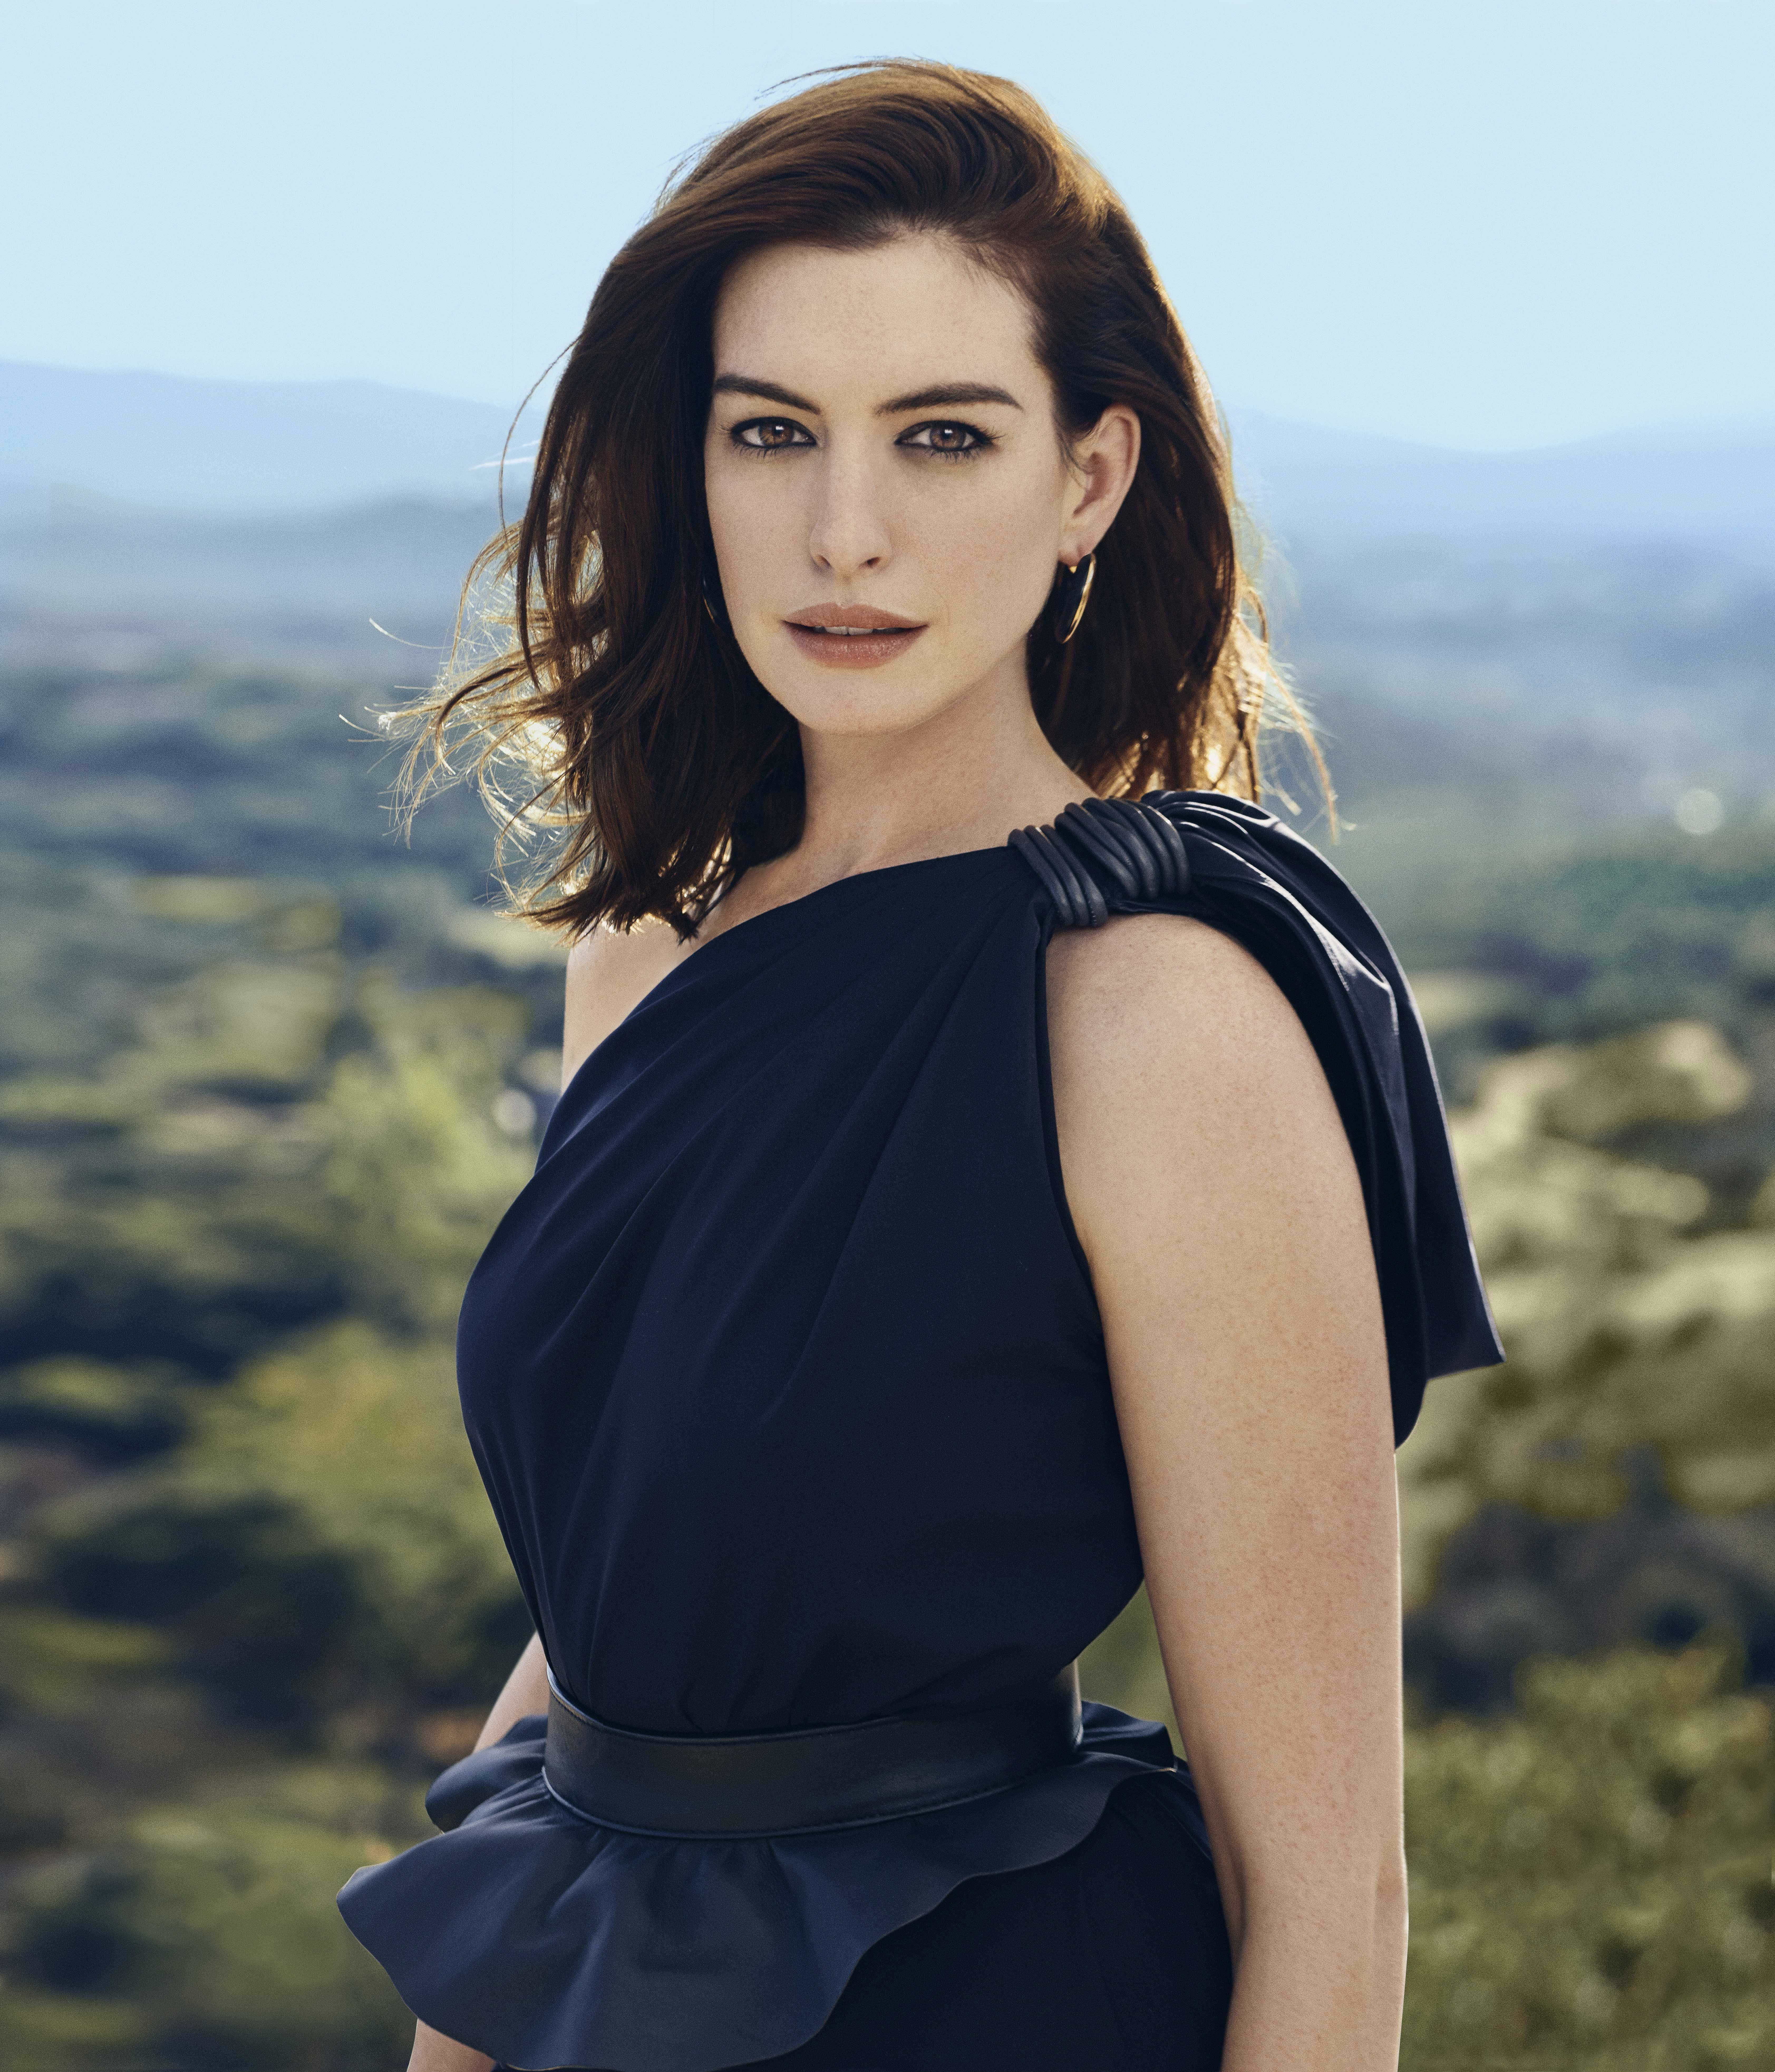 Hathaway in a MaxMara dress ($5,900) and belt ($545), Vhernier rose gold and jet earrings ($6,600).